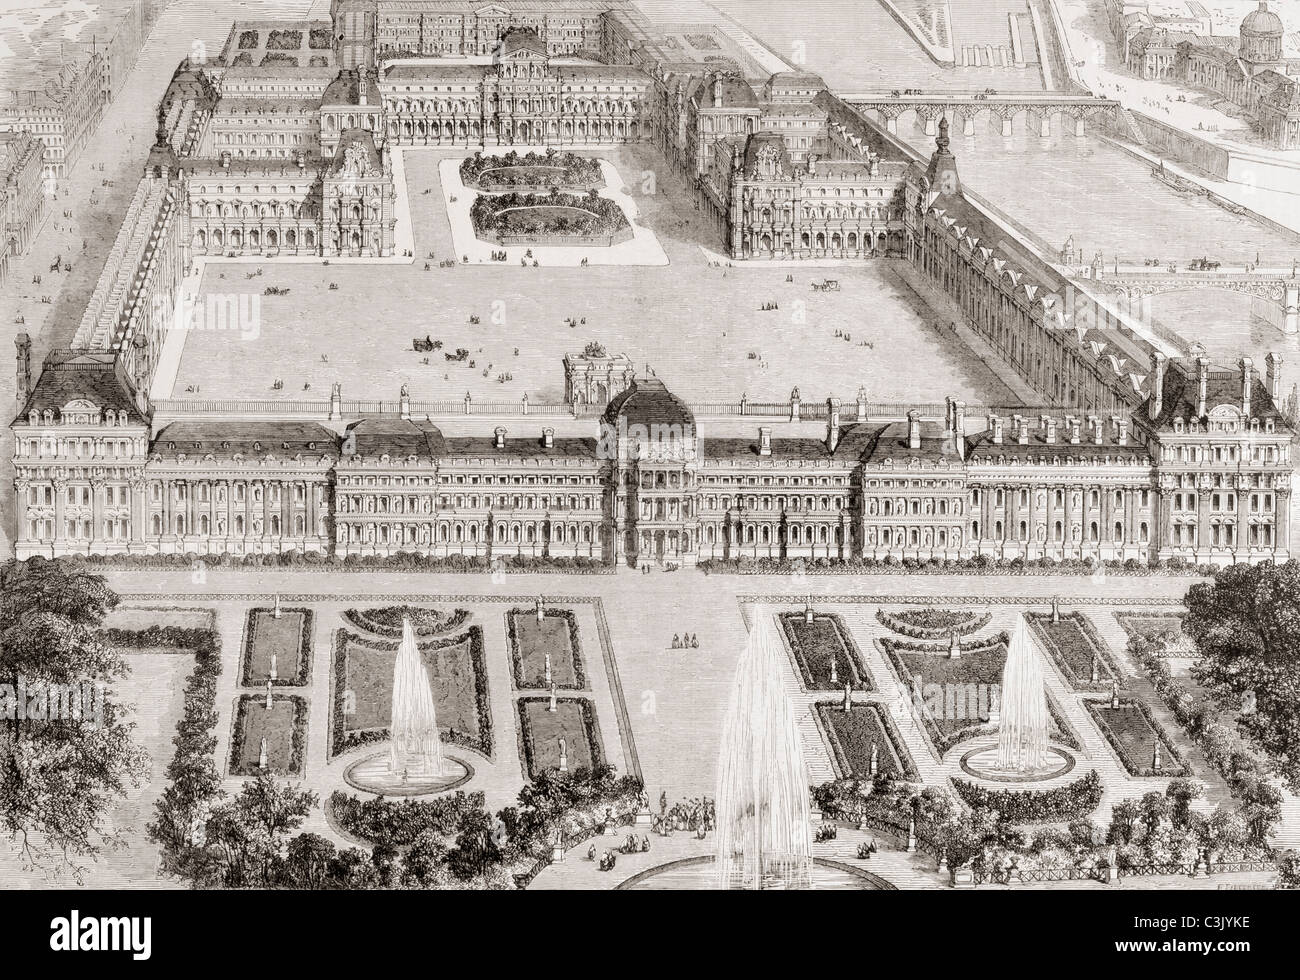 View of the new gardens of the Tuileries Palace and the new and the old Louvre, Paris, France, in the 19th century. - Stock Image